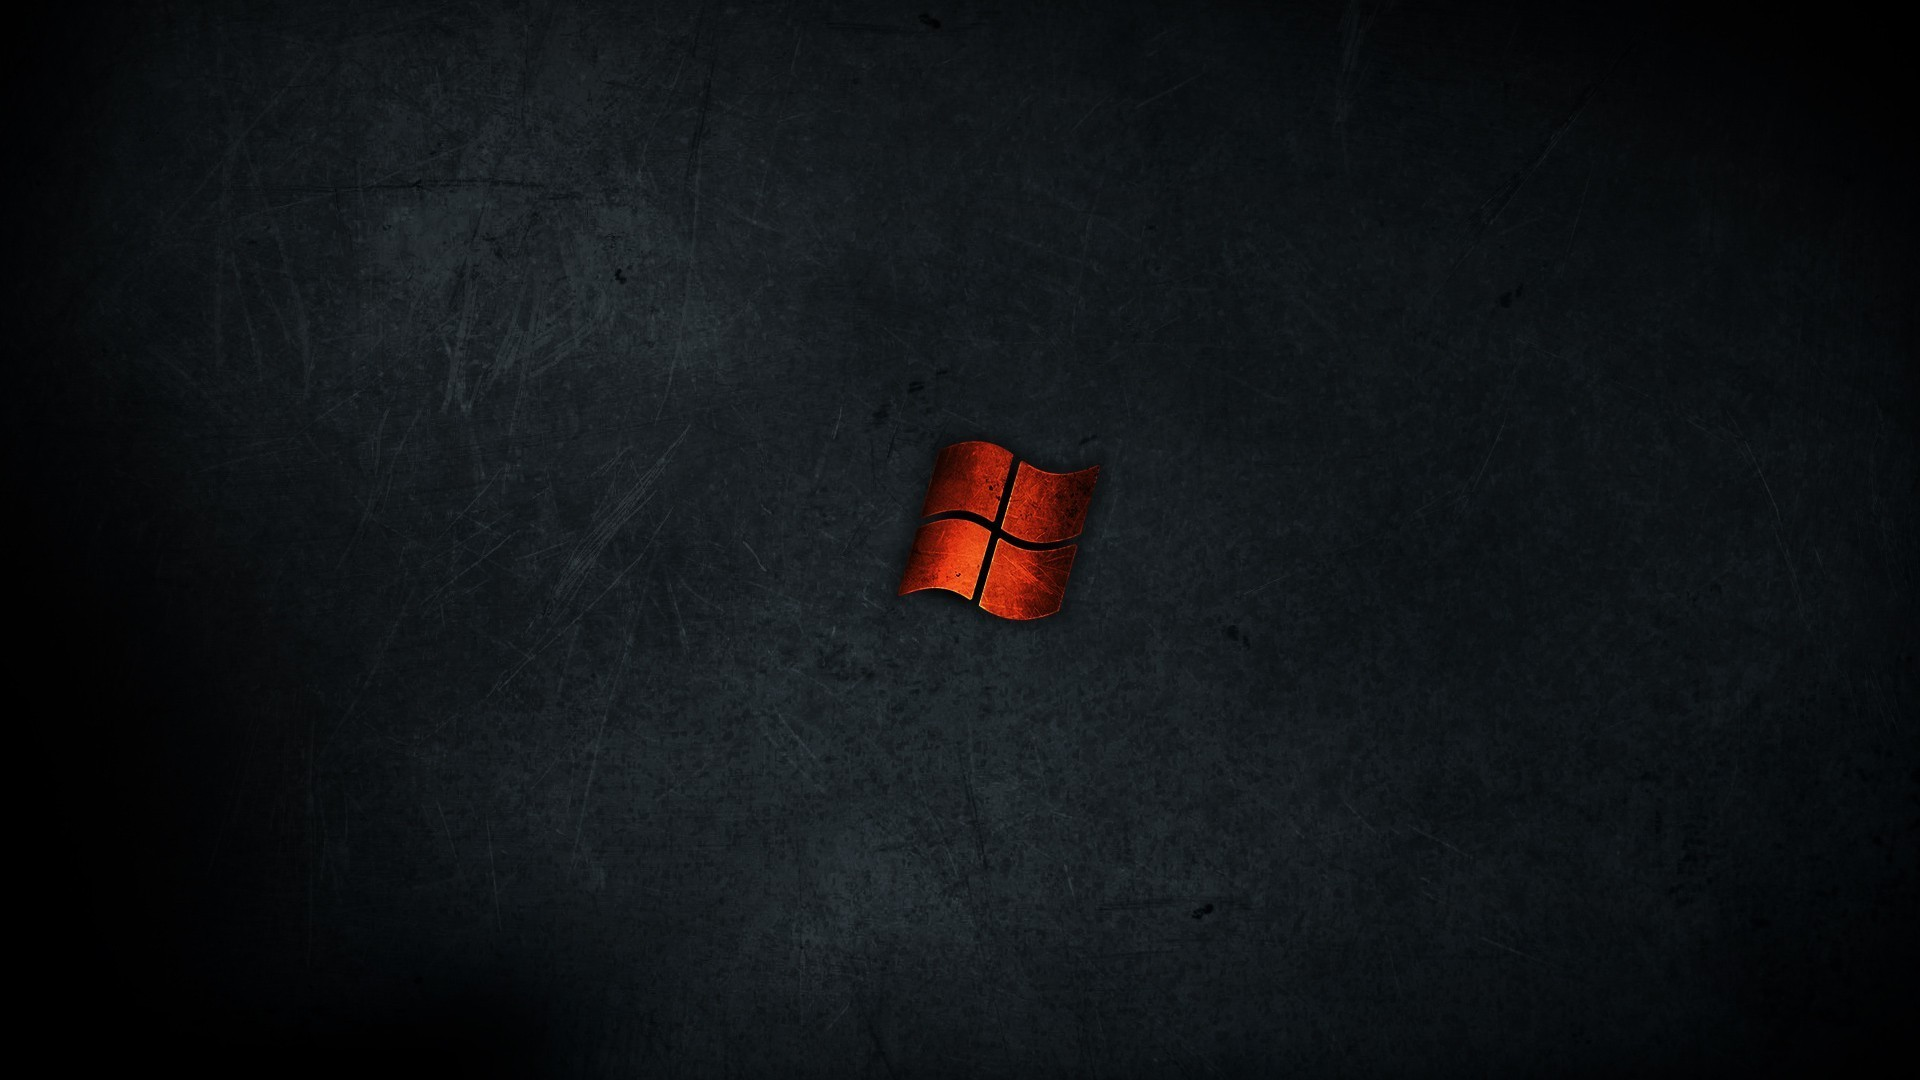 Windows 10 Black Wallpaper (67+ Images